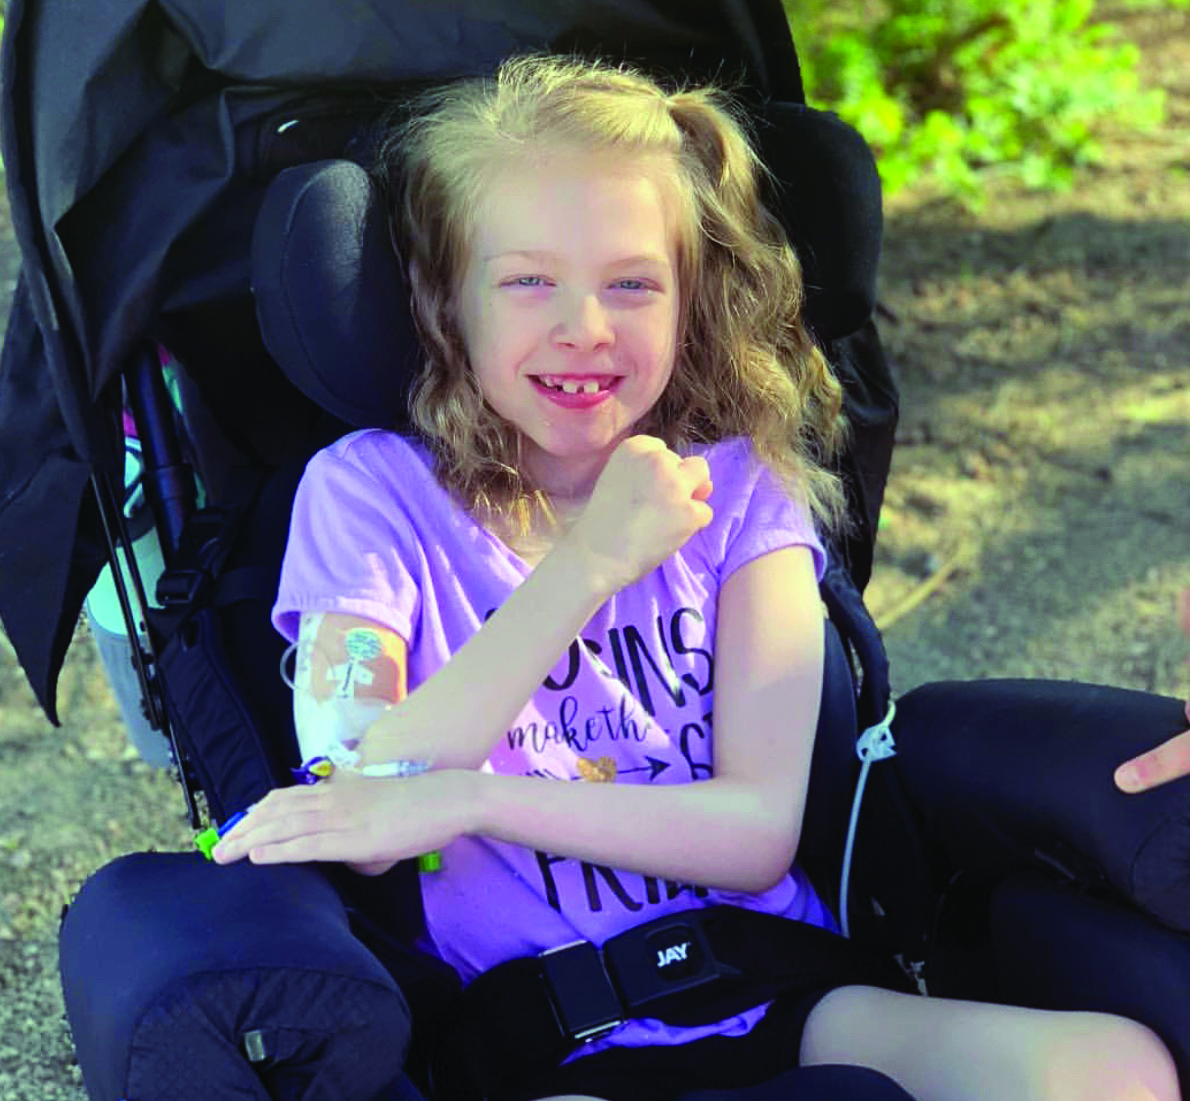 BE PART OF THE HOPE & HELP US ENRICH LIVES - Suzy Foundation is dedicated to individuals with special needs by helping with the cost of assistive equipment not covered by insurance.